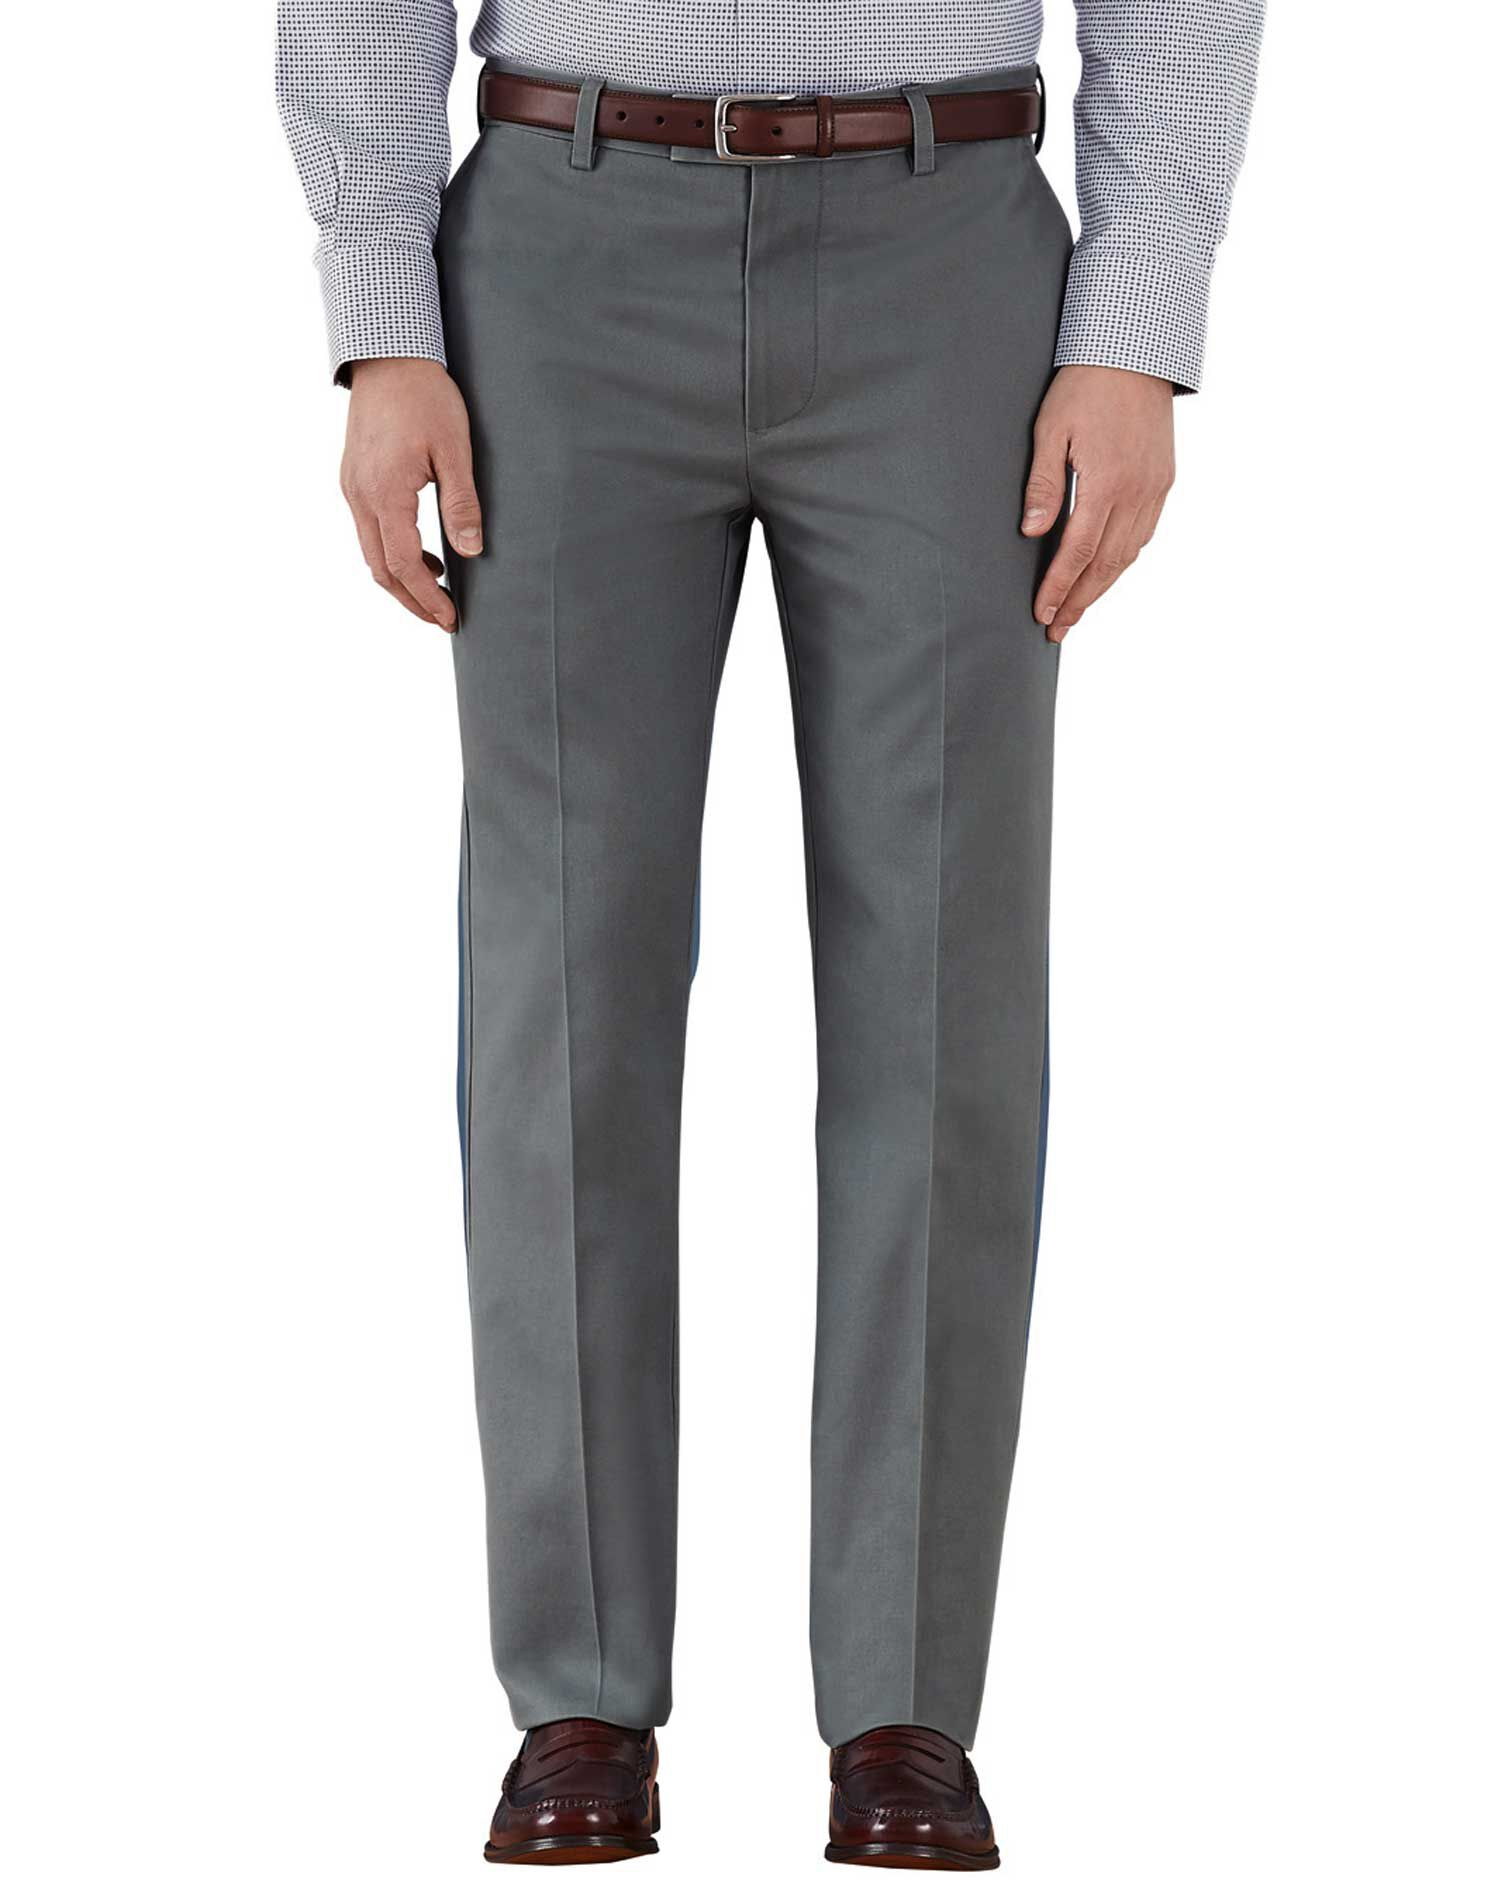 Grey Slim Fit Flat Front Non-Iron Cotton Chino Trousers Size W34 L34 by Charles Tyrwhitt